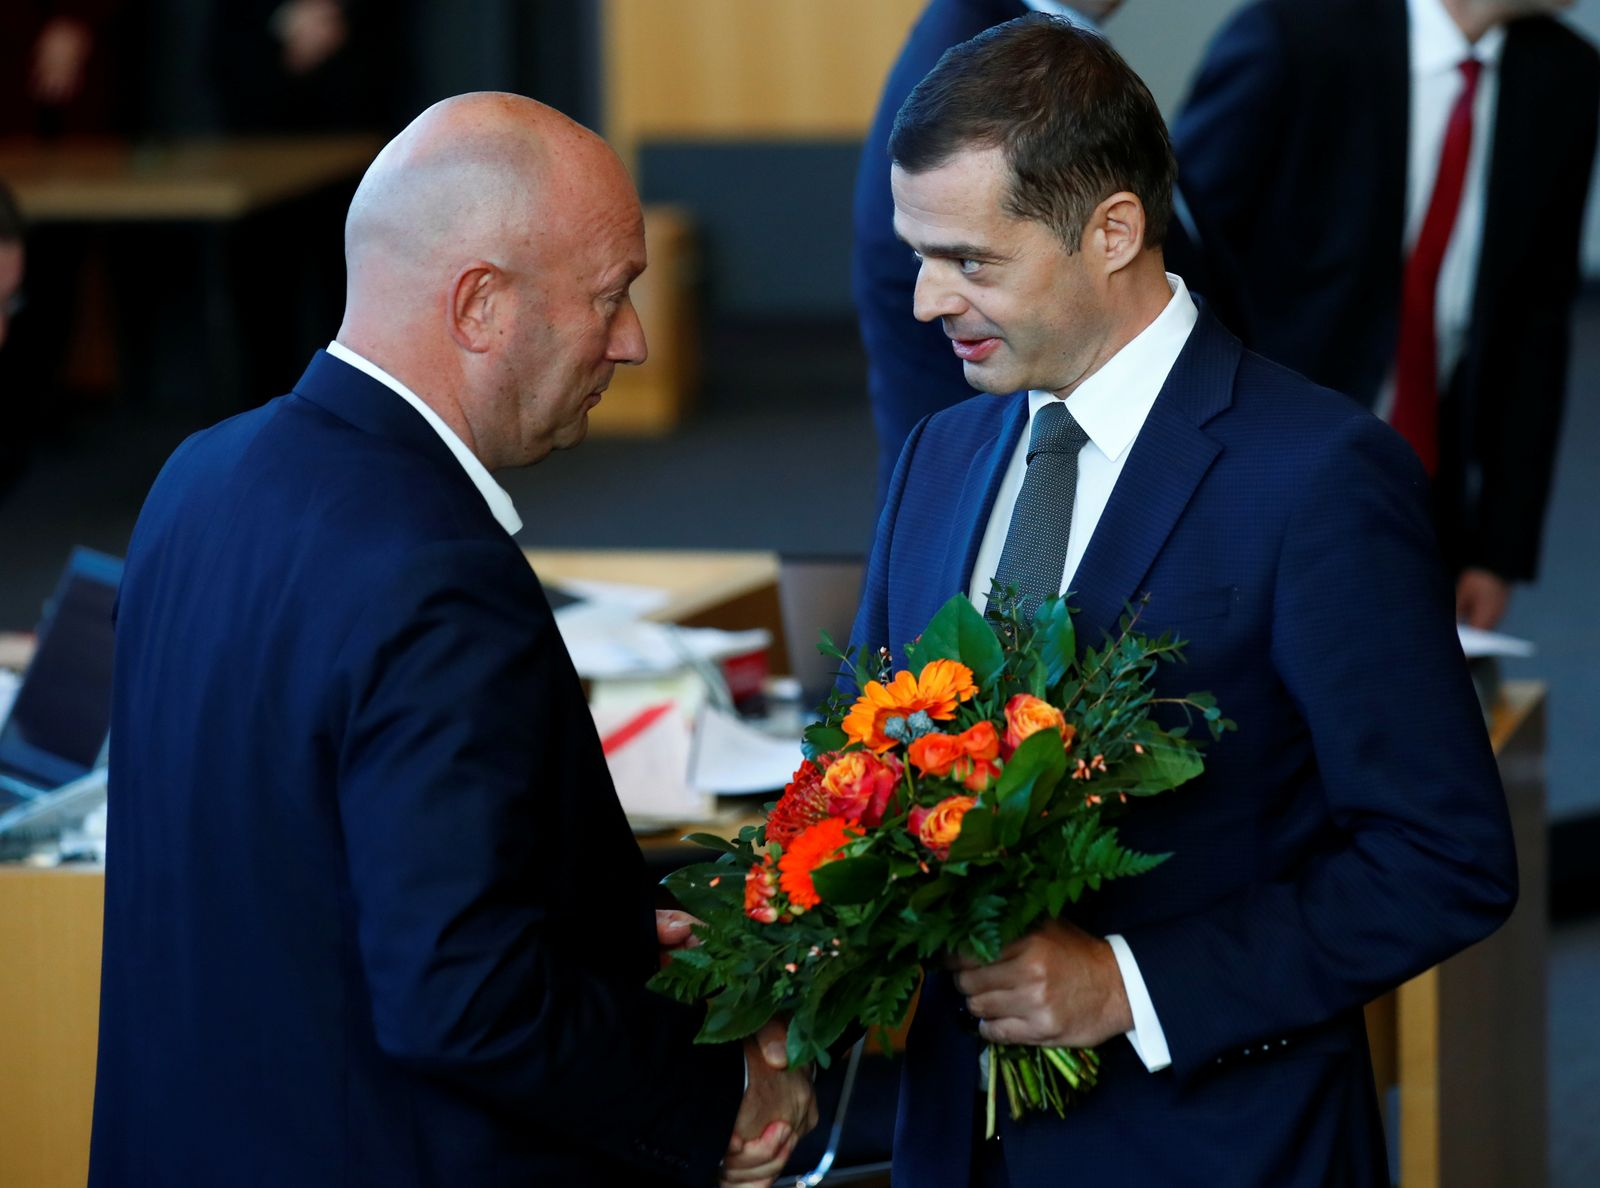 Election of a new state prime minister in Erfurt